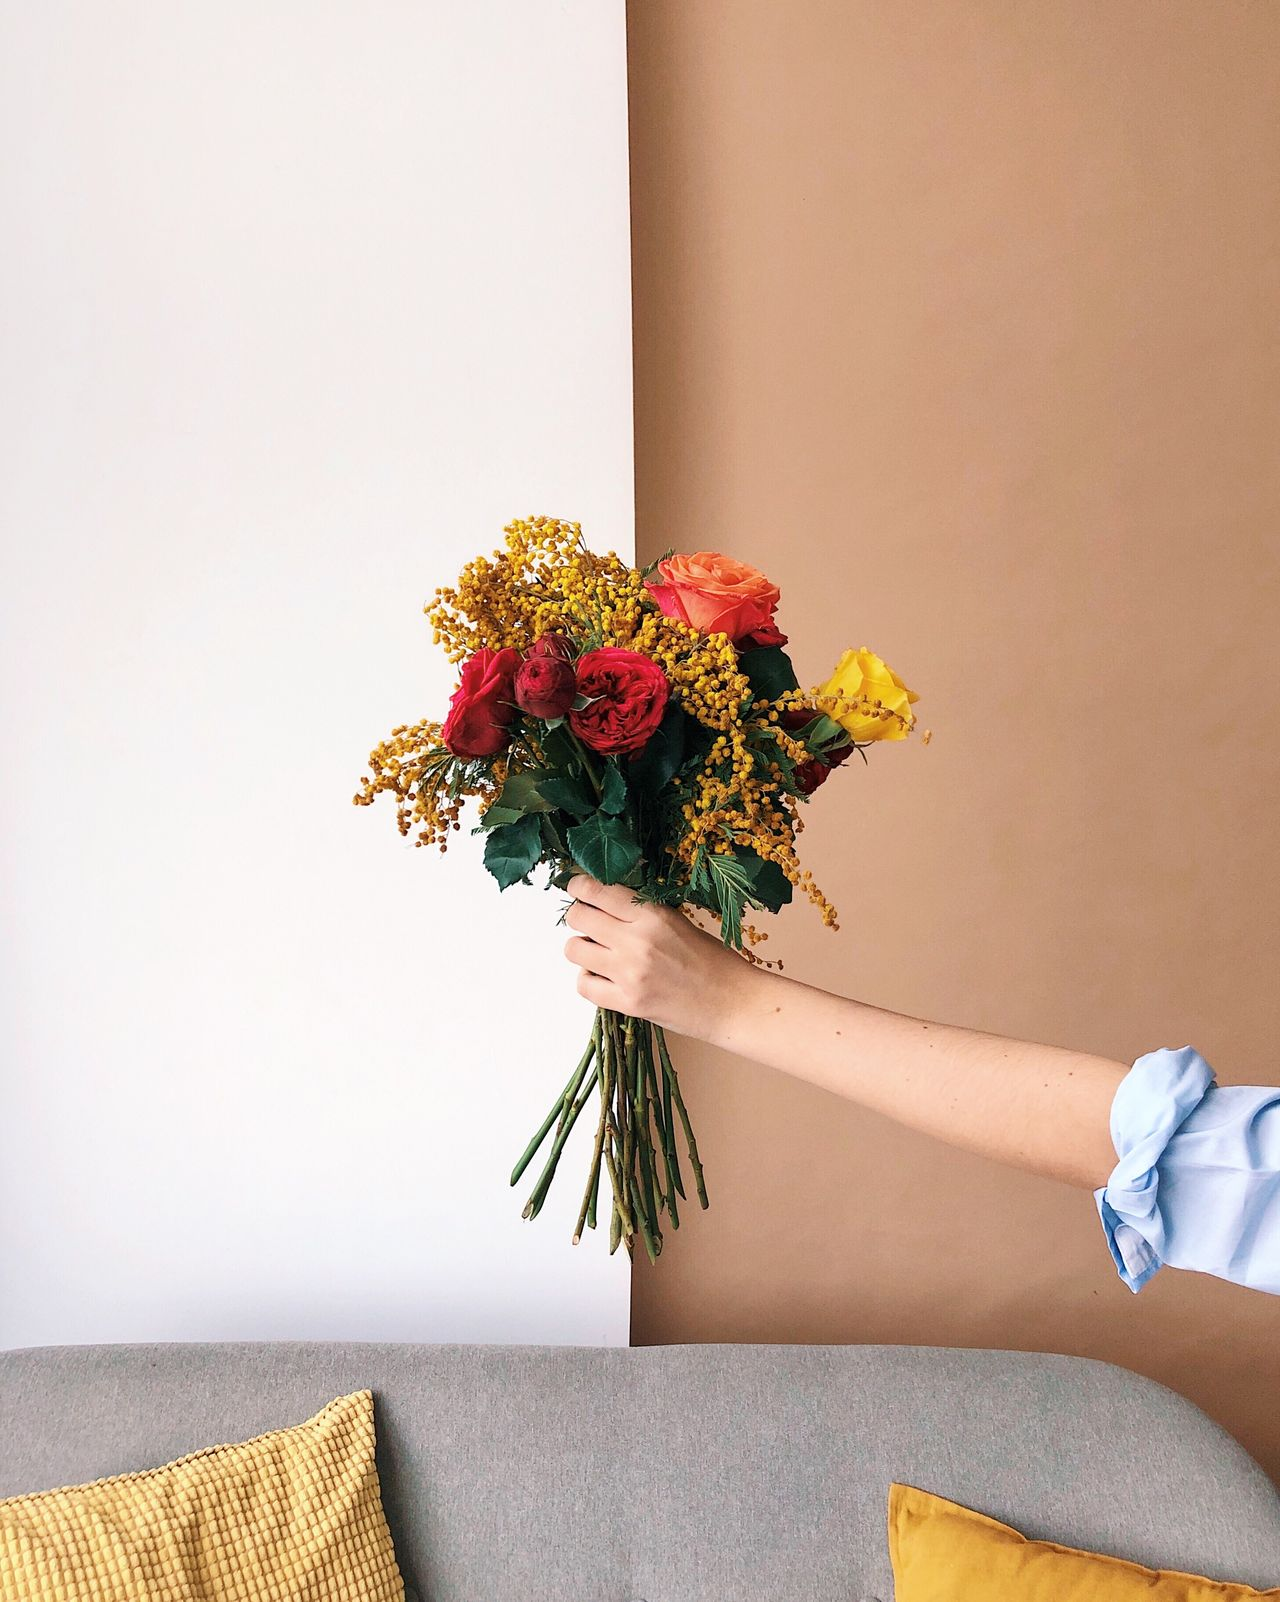 Cropped hand of hand holding bouquet against wall